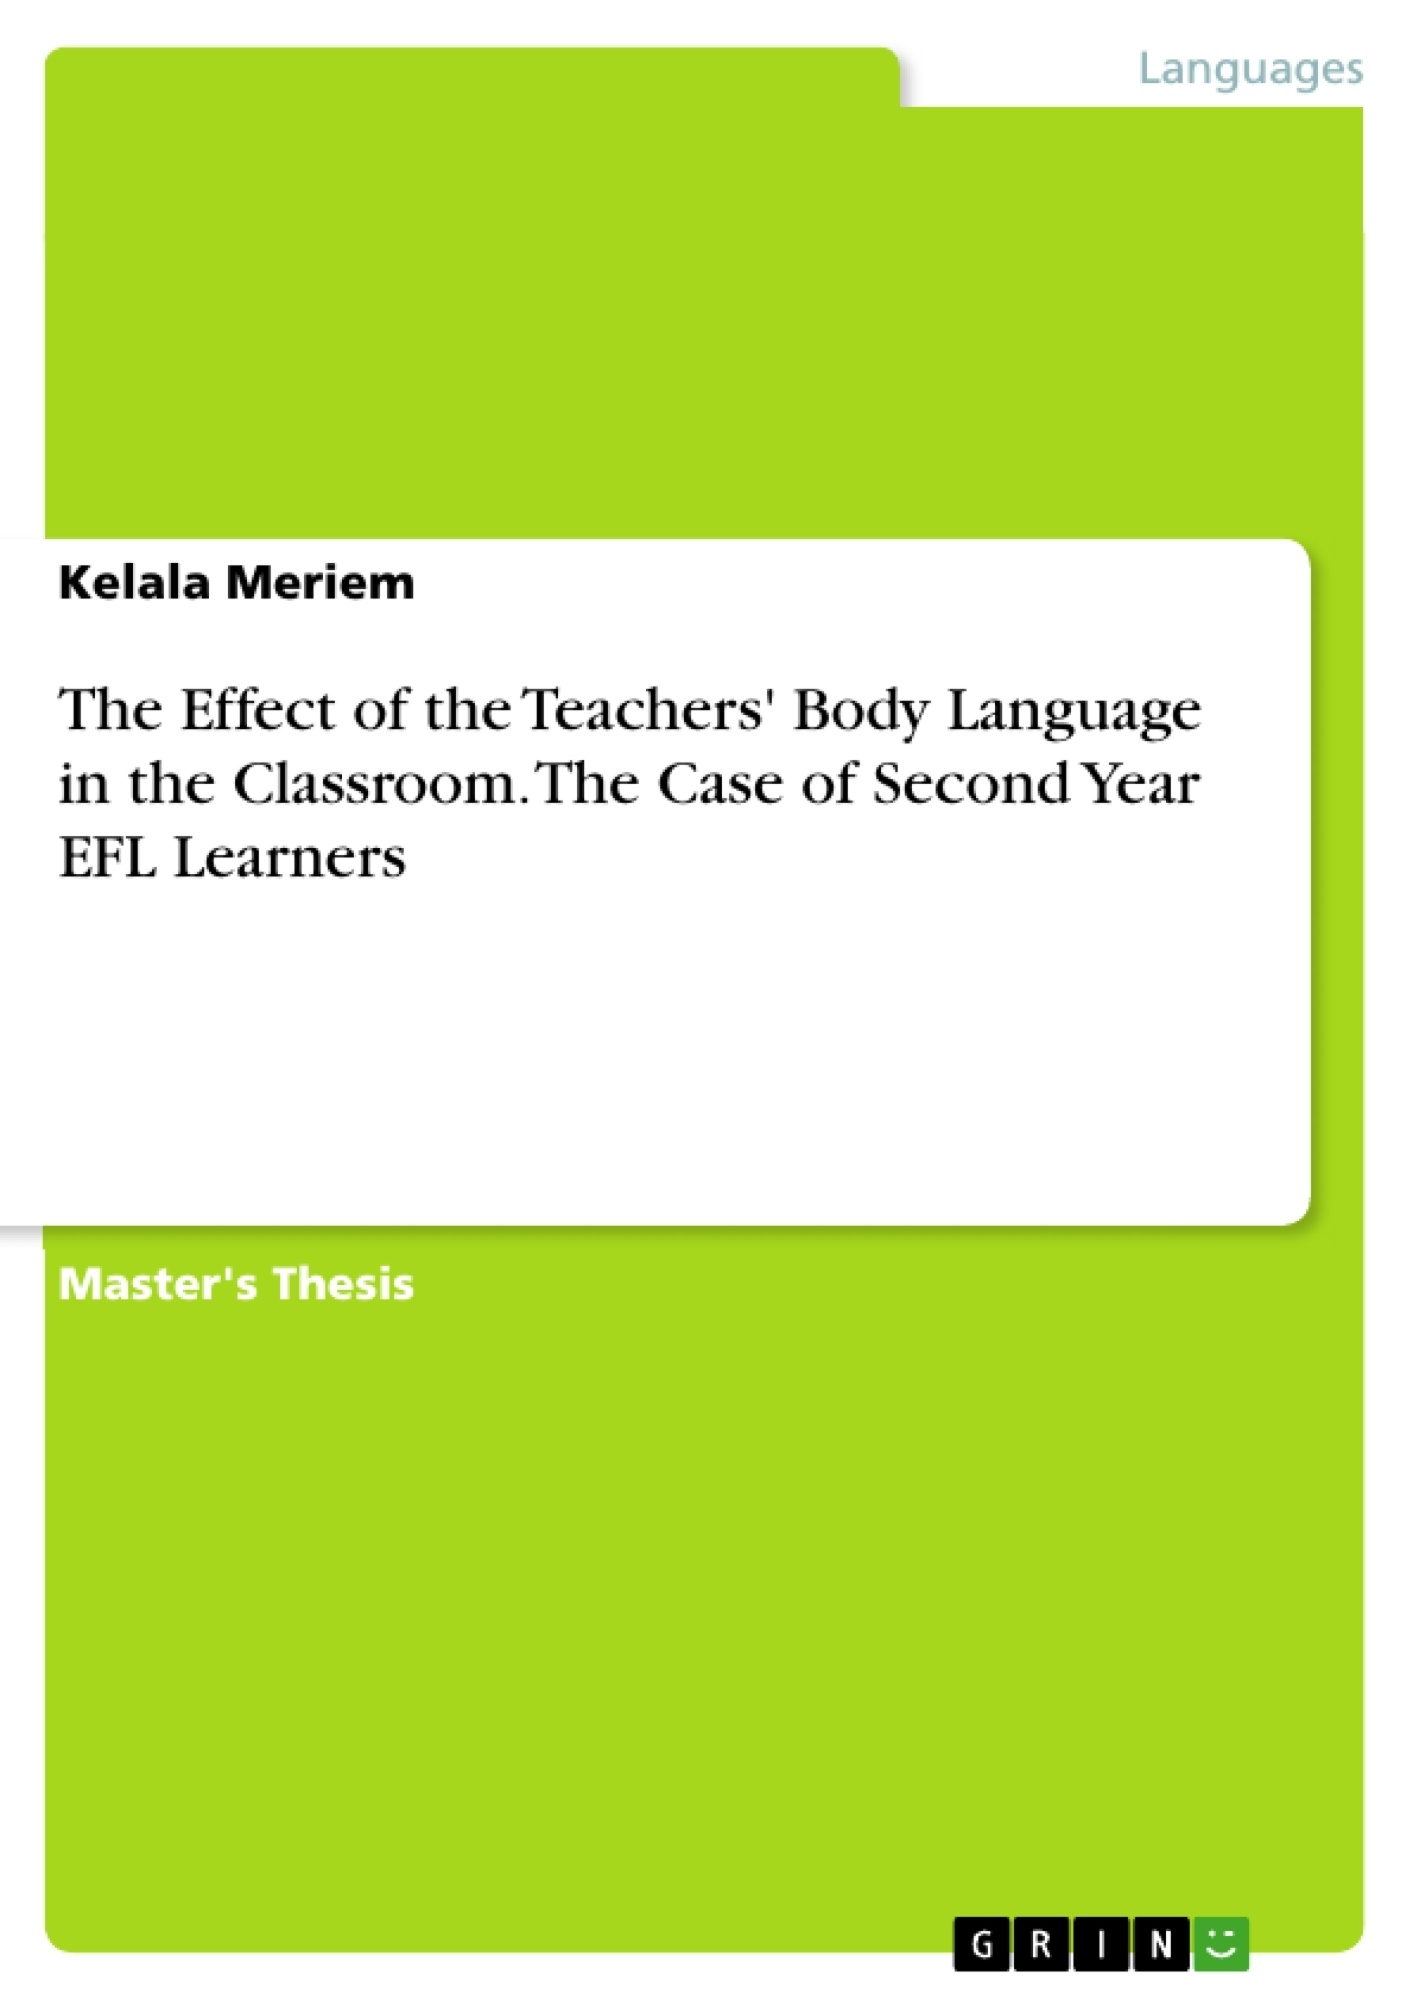 Title: The Effect of the Teachers' Body Language in the Classroom. The Case of Second Year EFL Learners